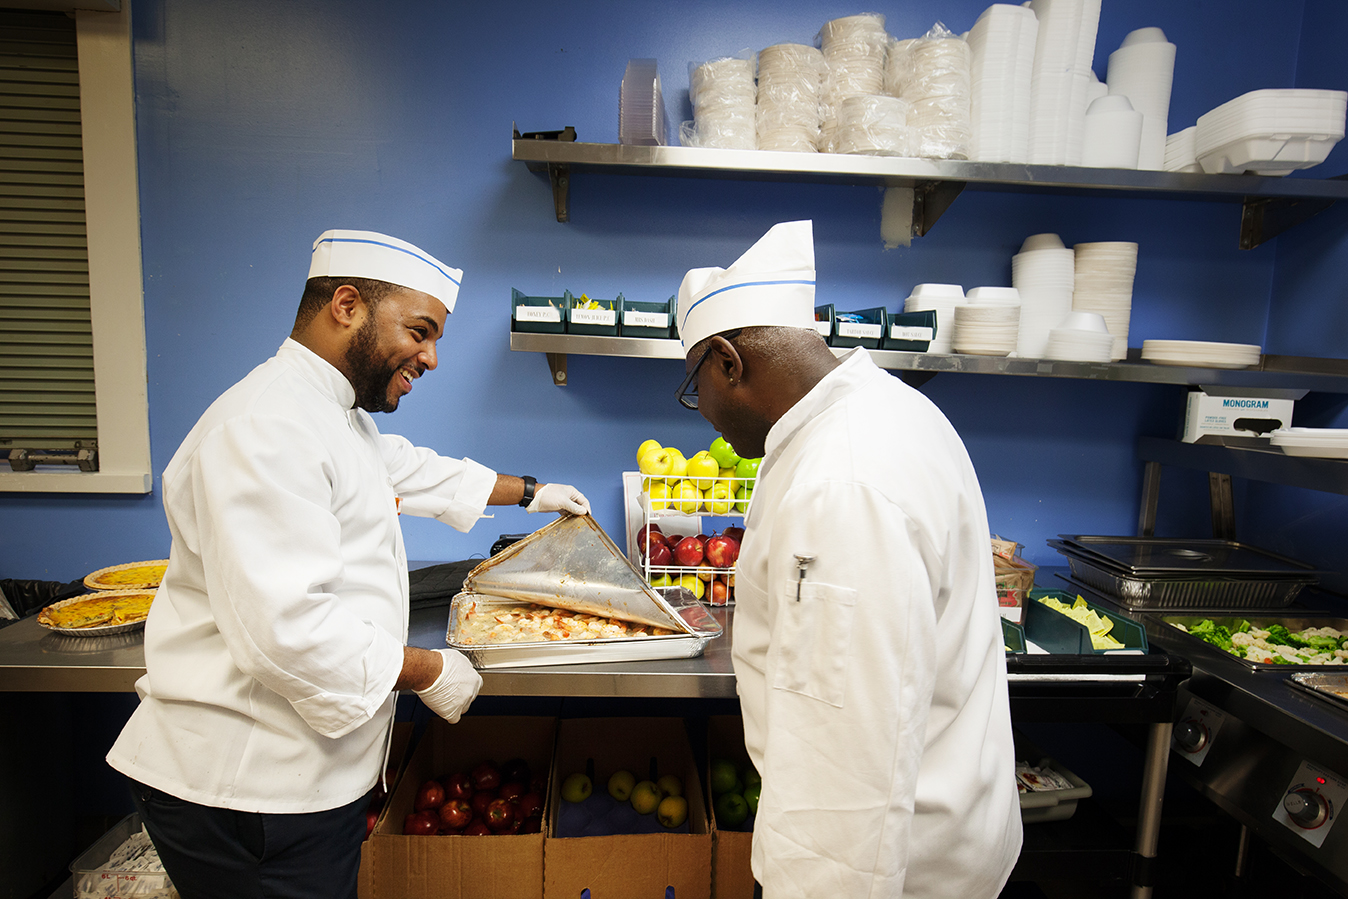 Vocational training include cooking, fitness and digital media